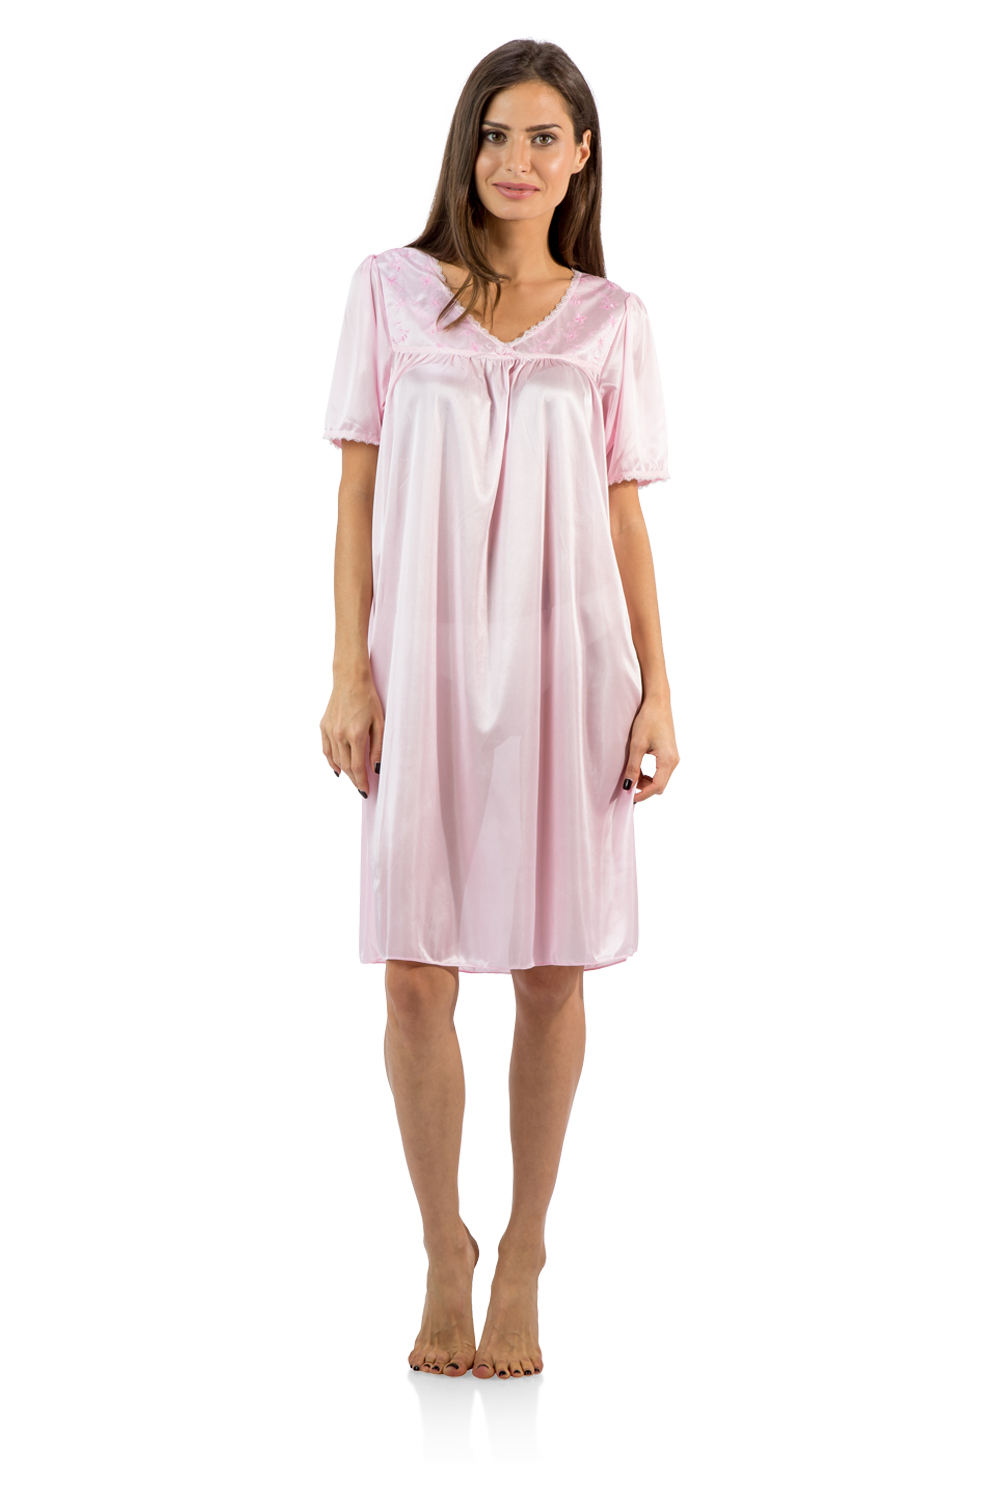 Casual Nights Women's Satin Embroidery Lace Short Sleeve Nightgown